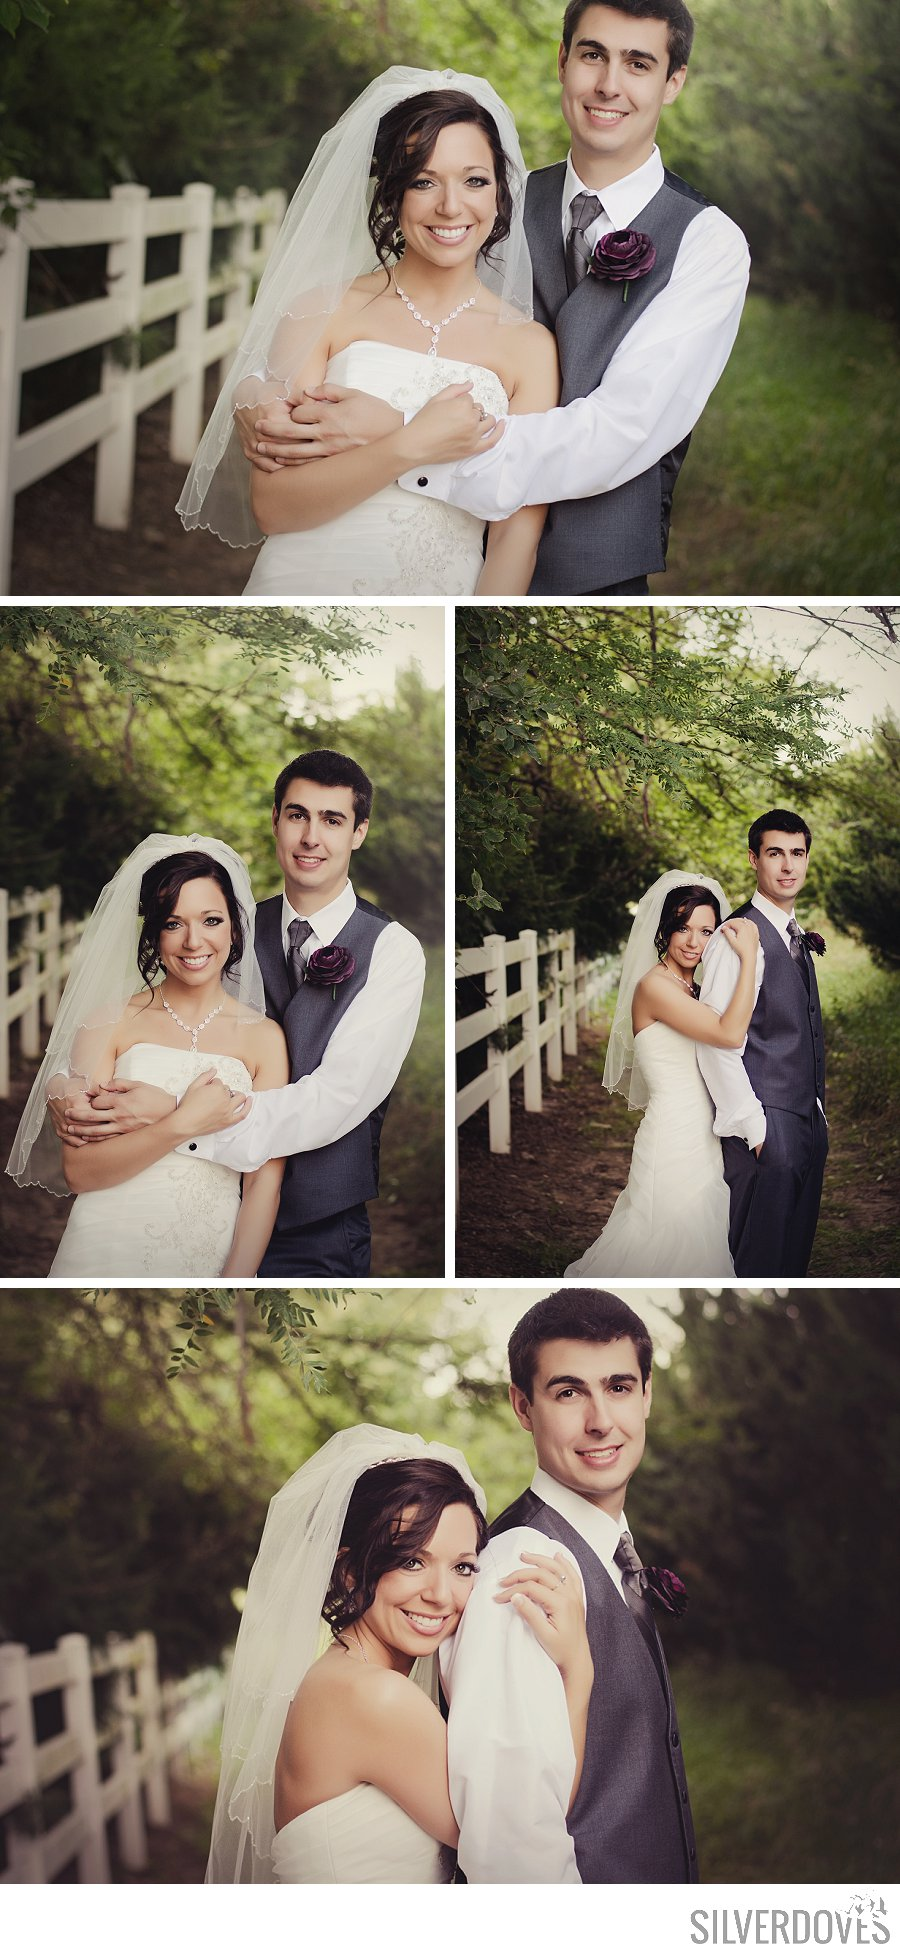 Marissa and Trent - Lenexa, KS - Peeper Ranch - Bride and Groom Portraits 3